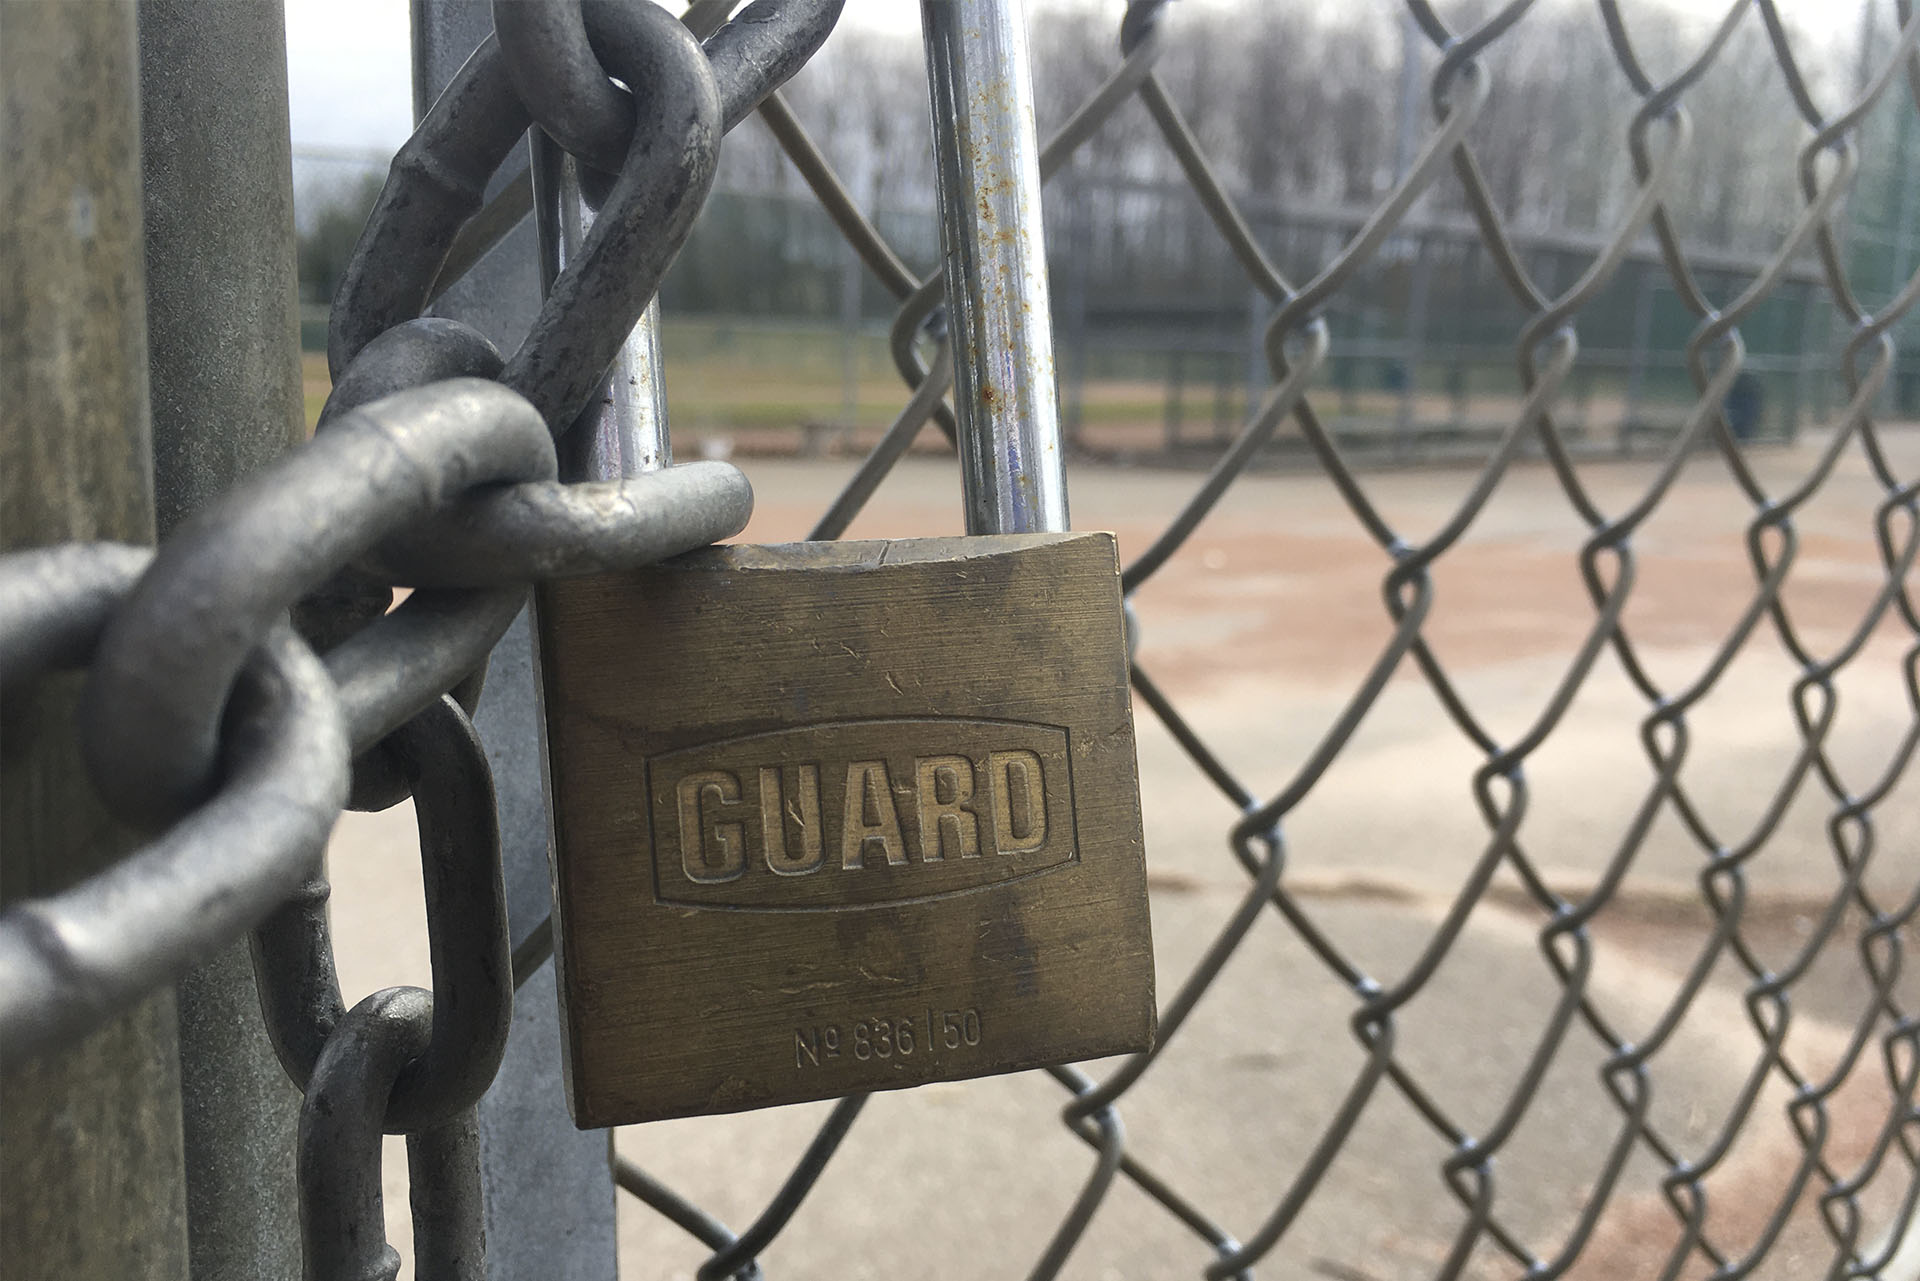 A lock on the gate to a baseball field.